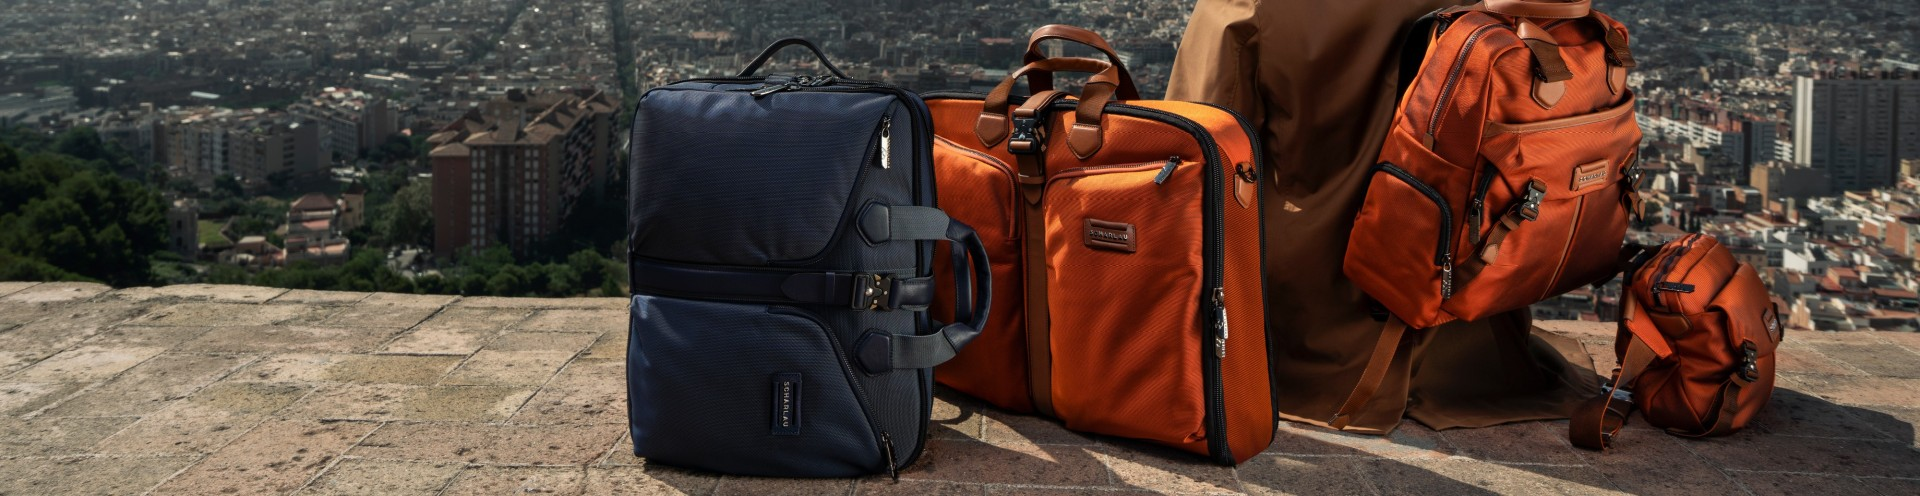 Men's High Quality Carry-On Baggage